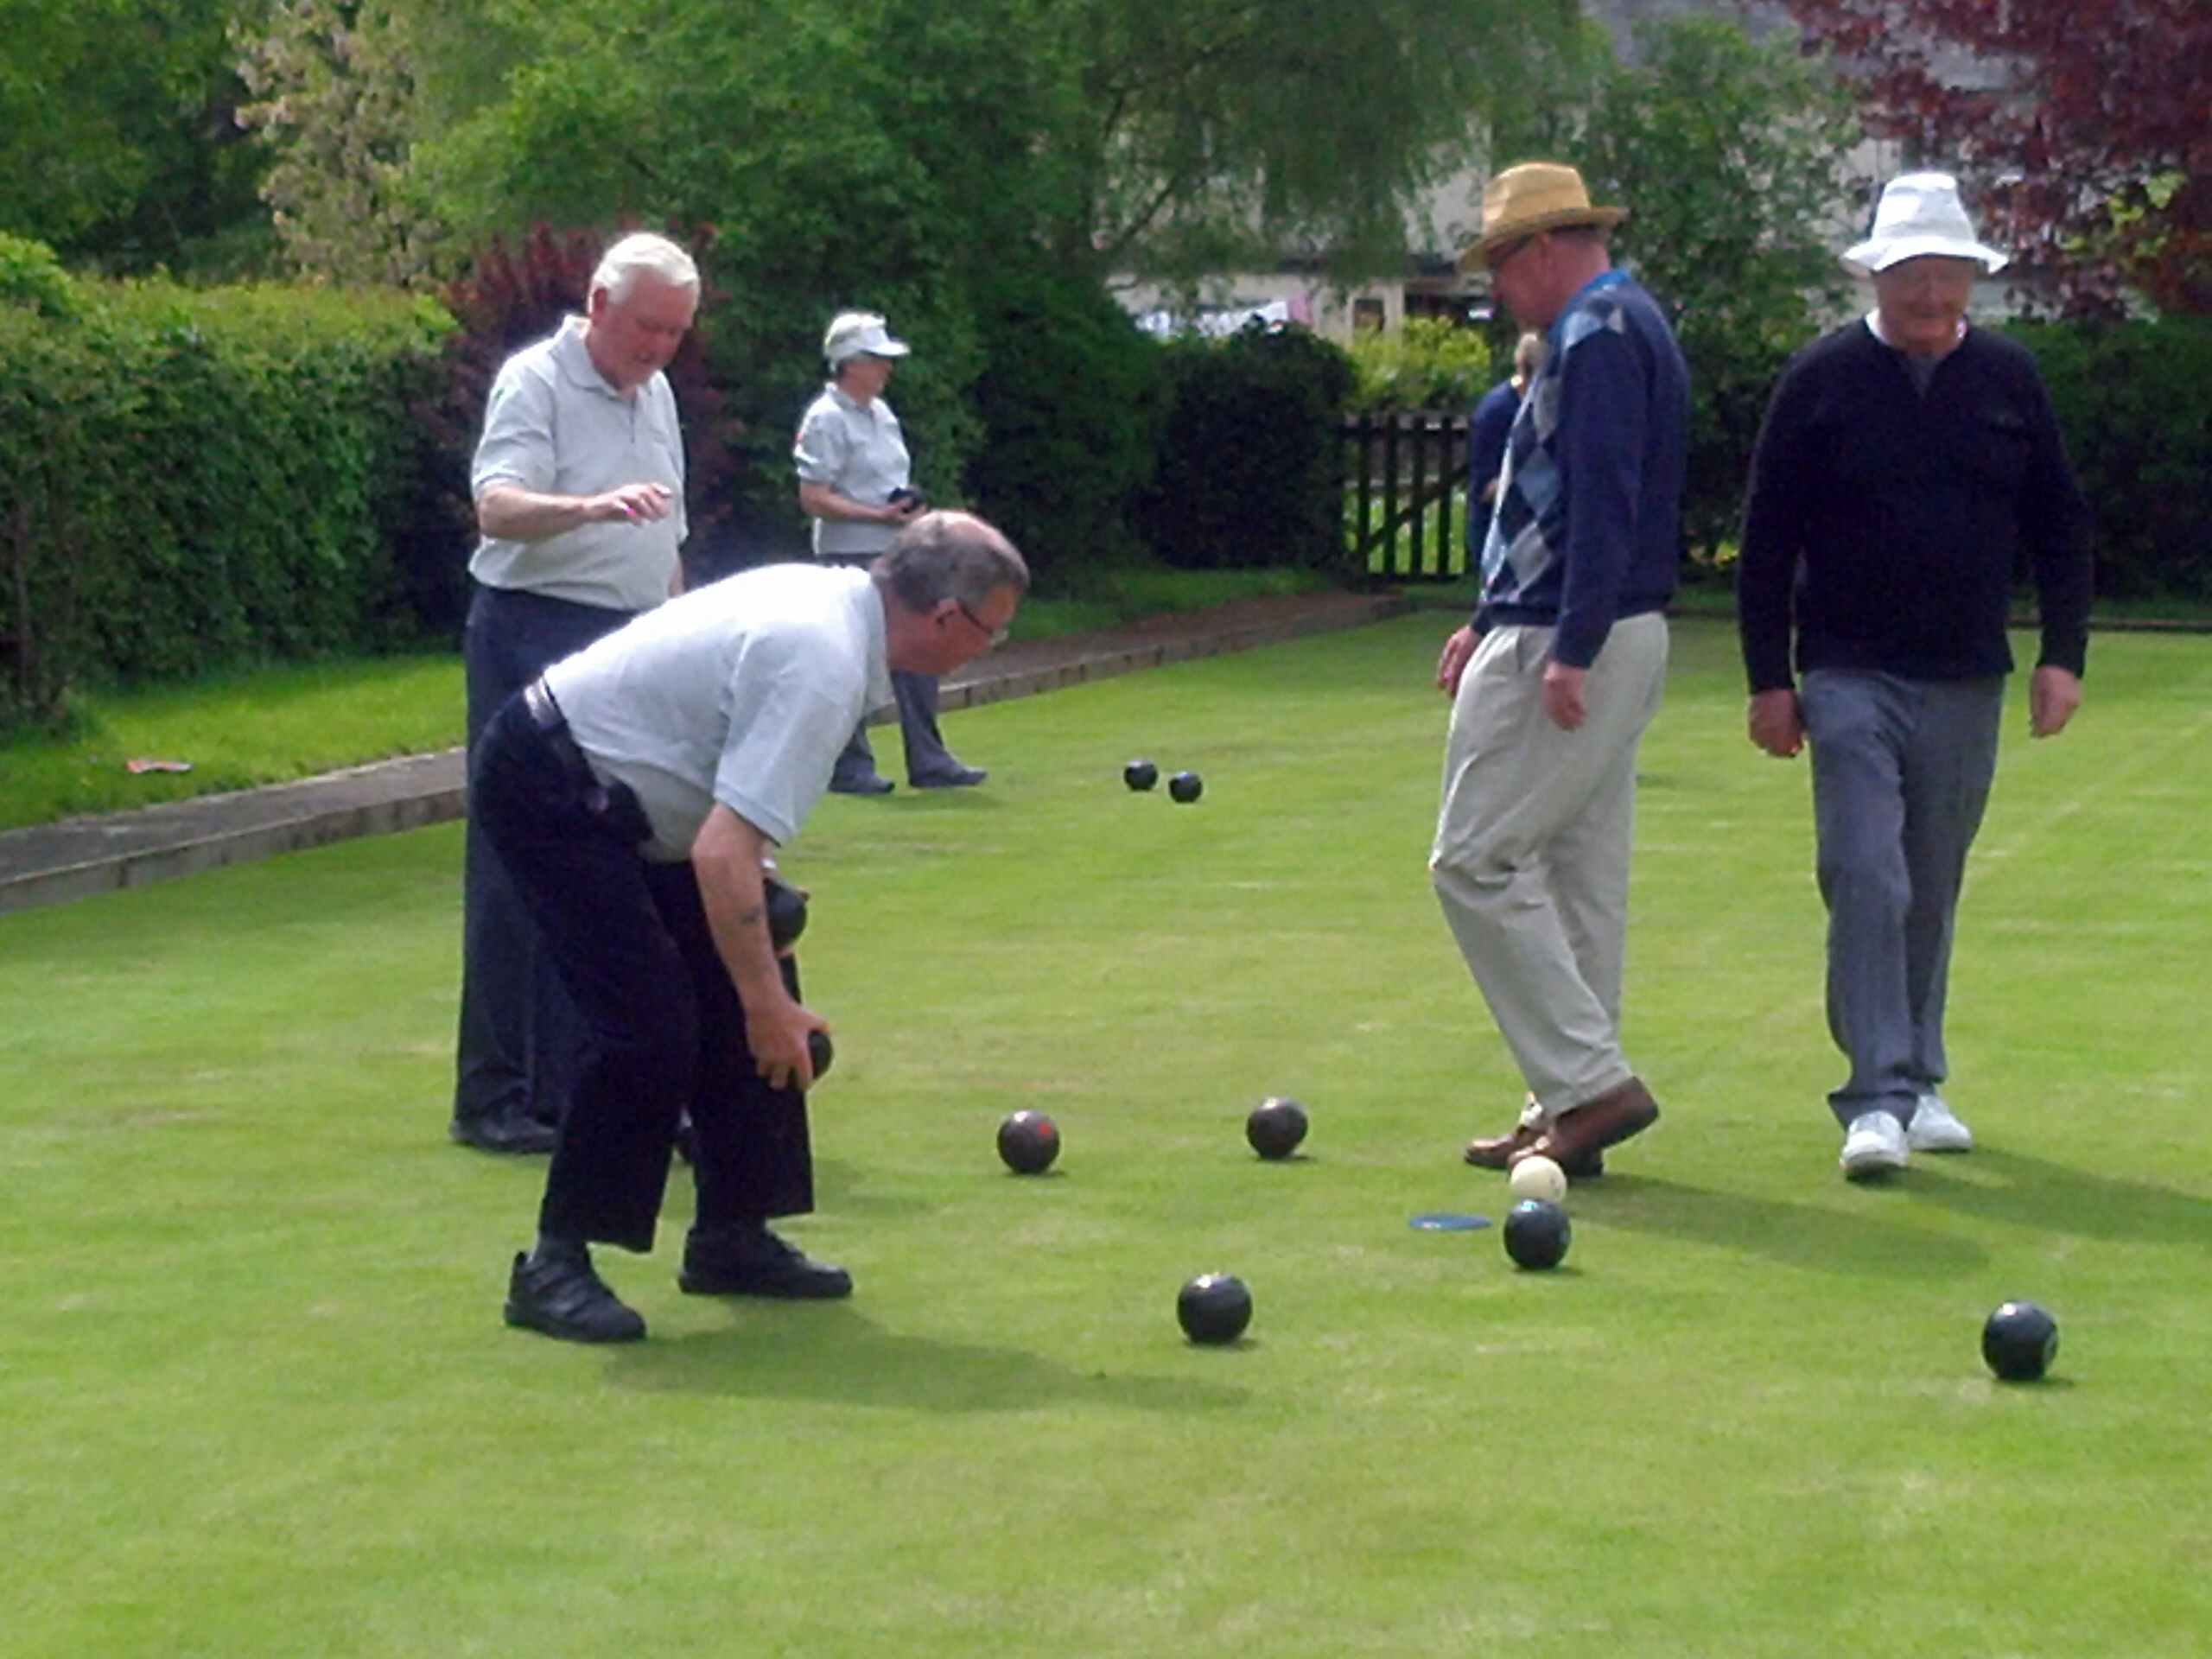 Parwich Crown Green Bowls Club is based at Parson's Croft off Creamery  Lane. It is a small enthusiastic club with a range of club events and teams  in the ...